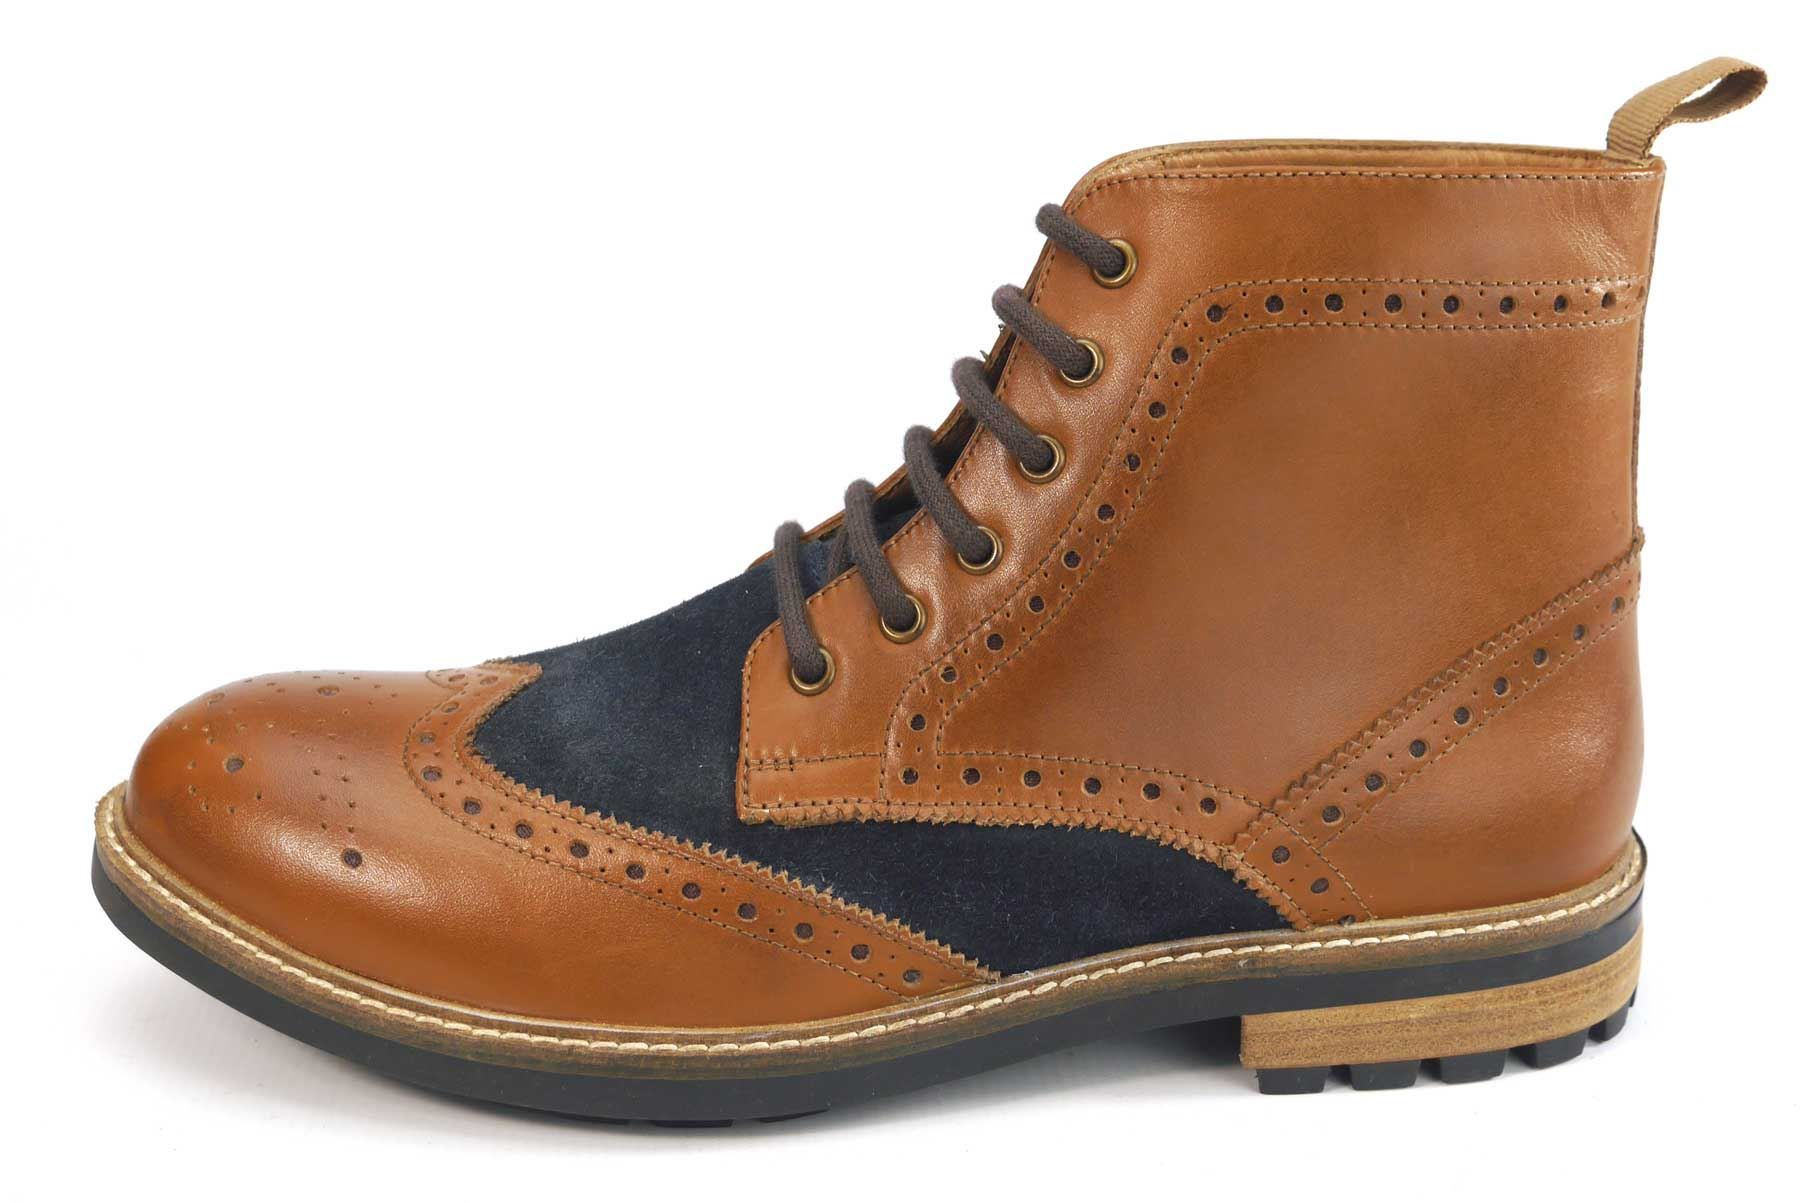 Frank James Bexley Quality Real Leather Lace Up Brogue Rubber Sole Mens Boots